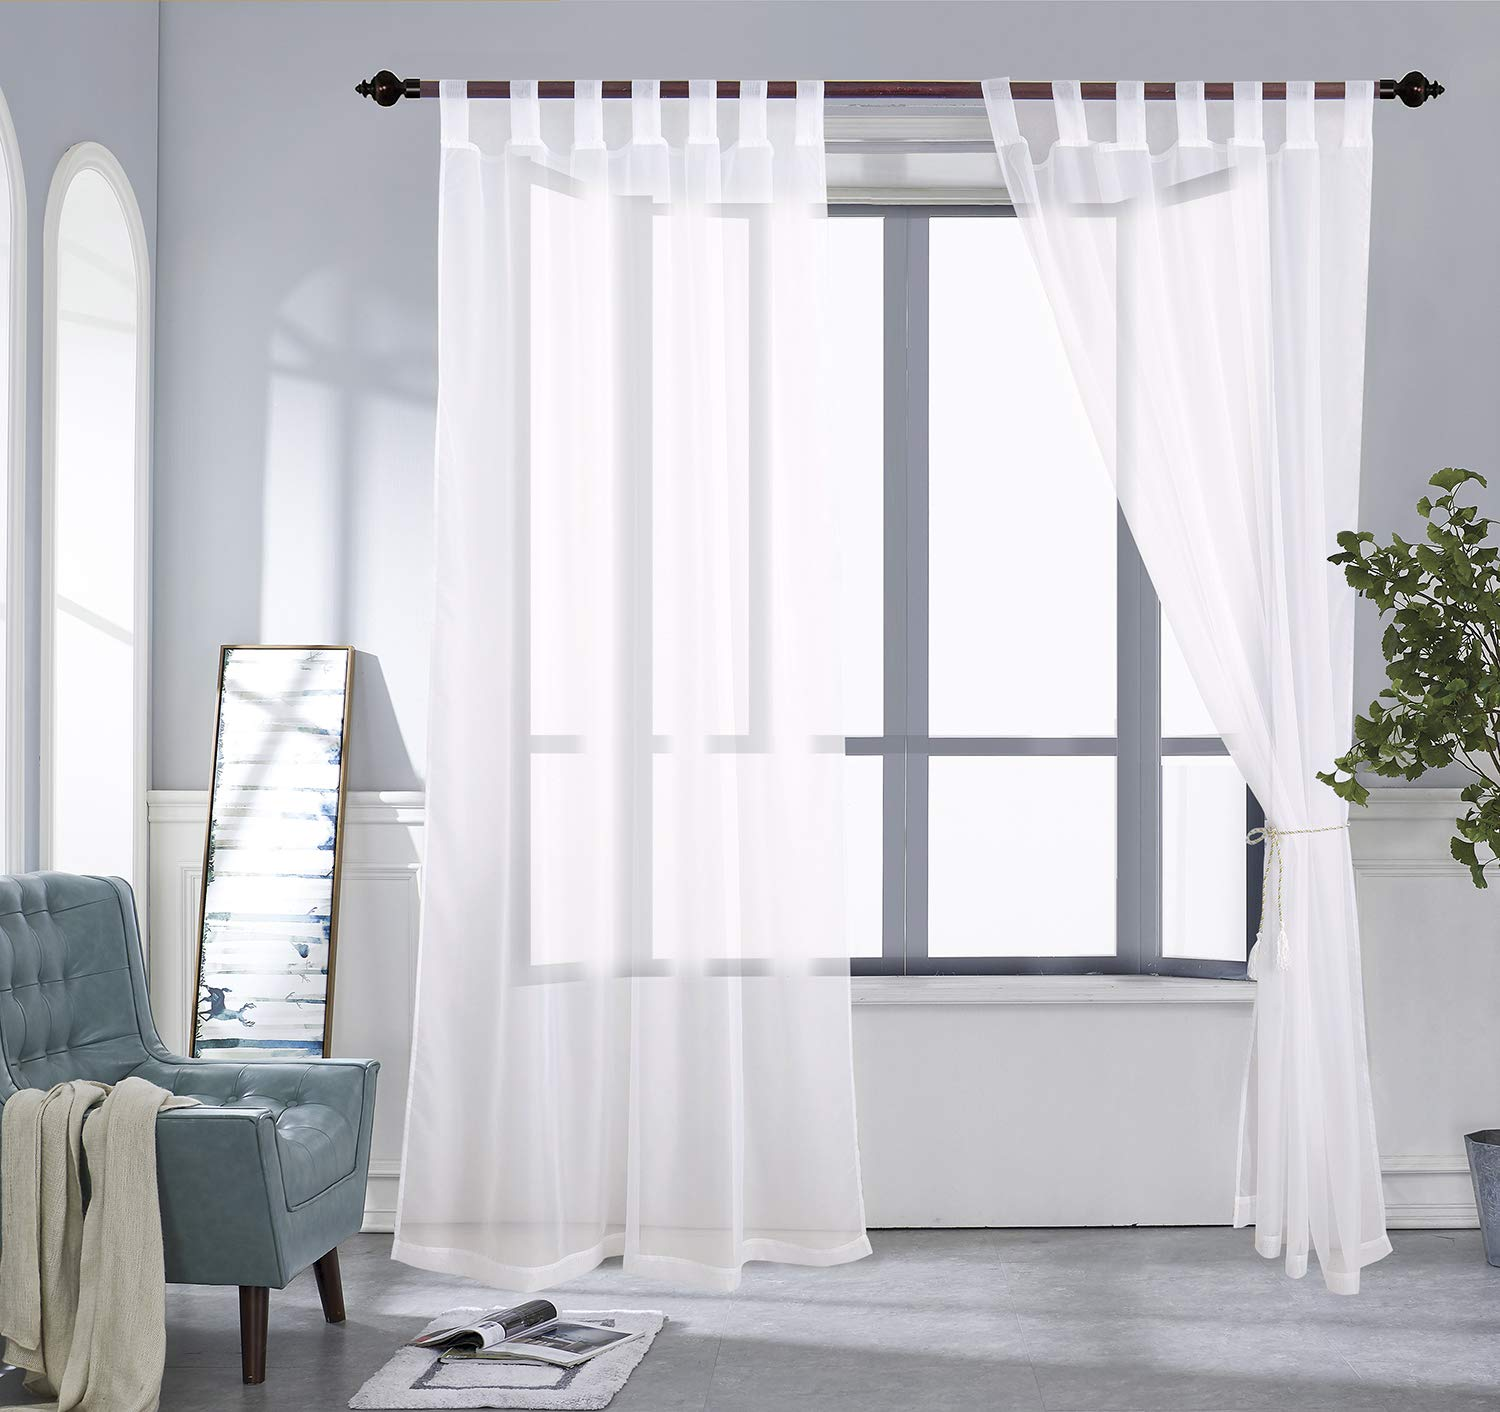 PRAVIVE Outdoor Sheer Curtain Panels Off White Elegant Water Repellent Grommet Indoor//Outdoor Drapes//Pergola Shades//Gazebo Blinds for Patio Privacy with Tiebacks 54 W X 96 L Set of 2